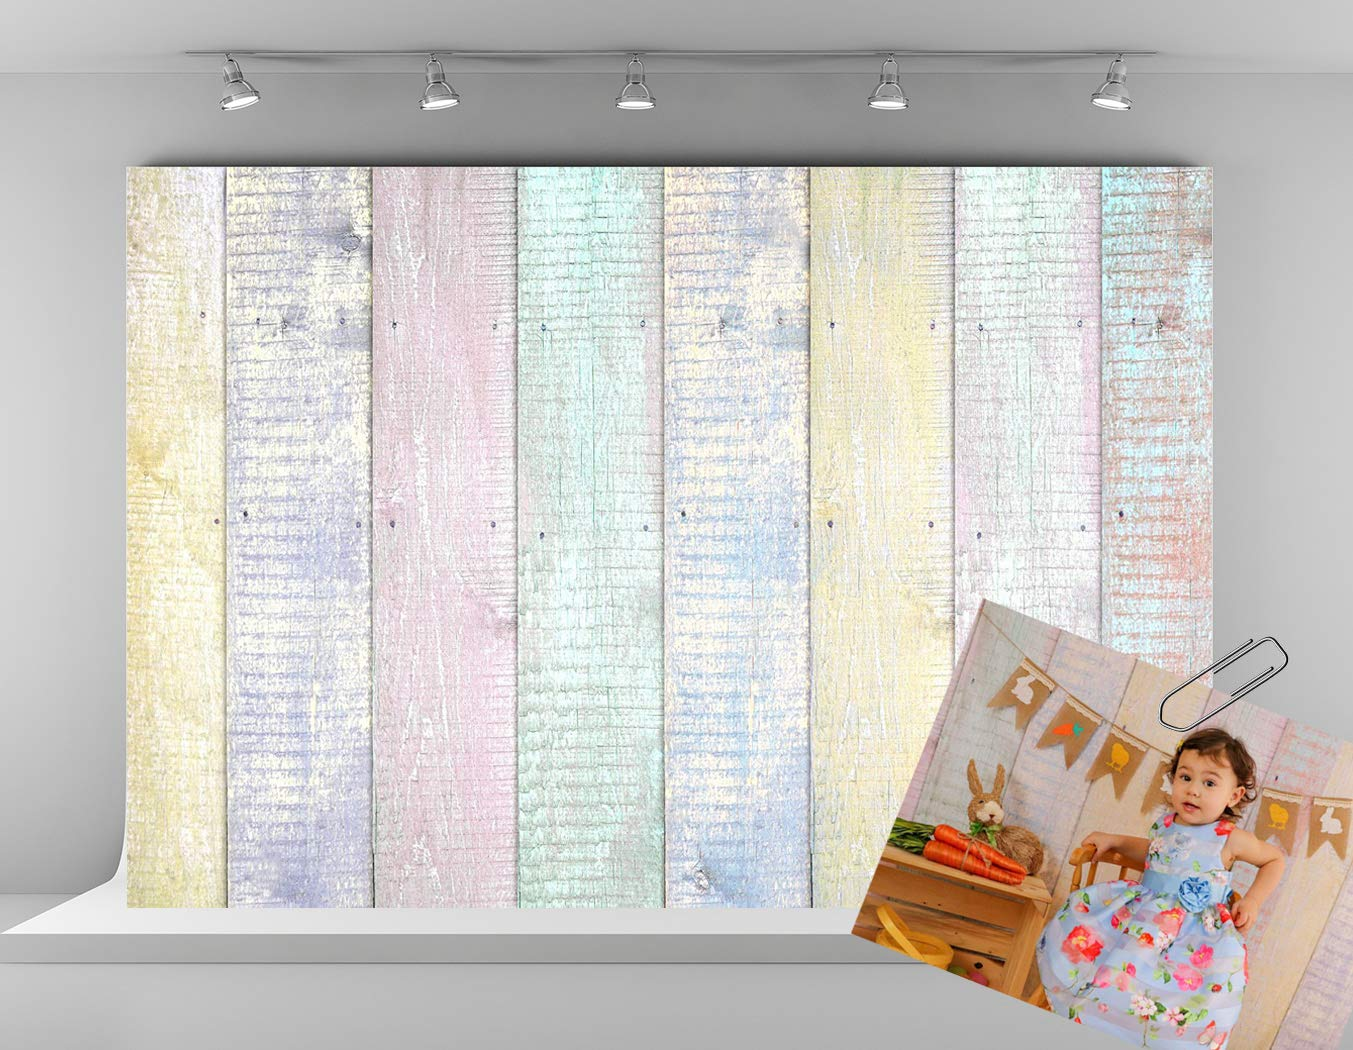 Kate 7x5ft Wood Fence Backdrops for Photography Colorful Wooden Texture Background Easter Photo Backdrop